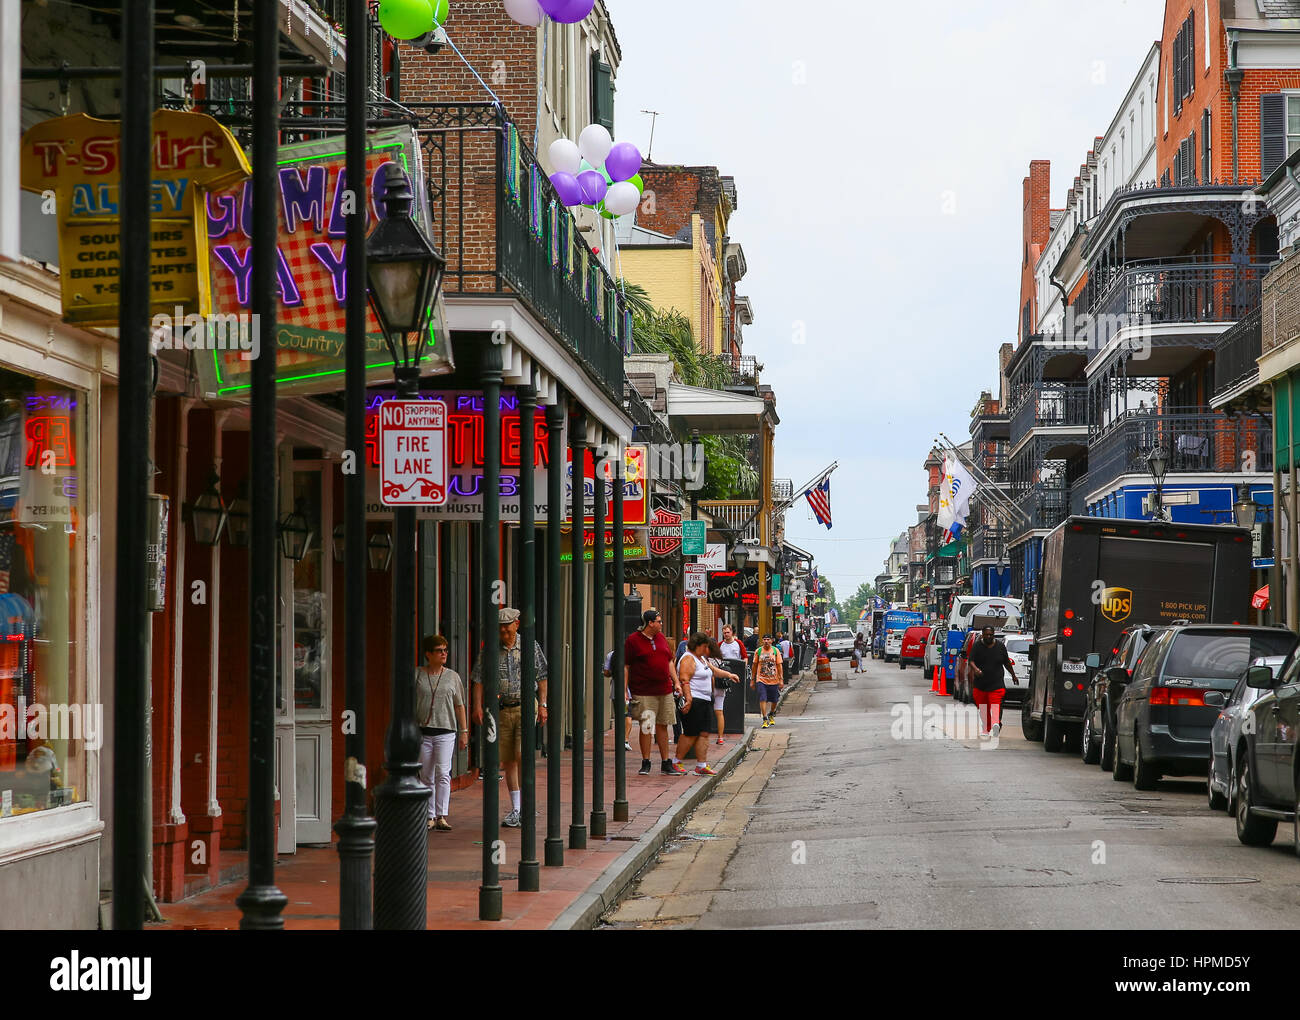 New Orleans, USA - May 14, 2015: Bourbon Street in French Quarter with pedestrians on the sidewalks and cars parked - Stock Image